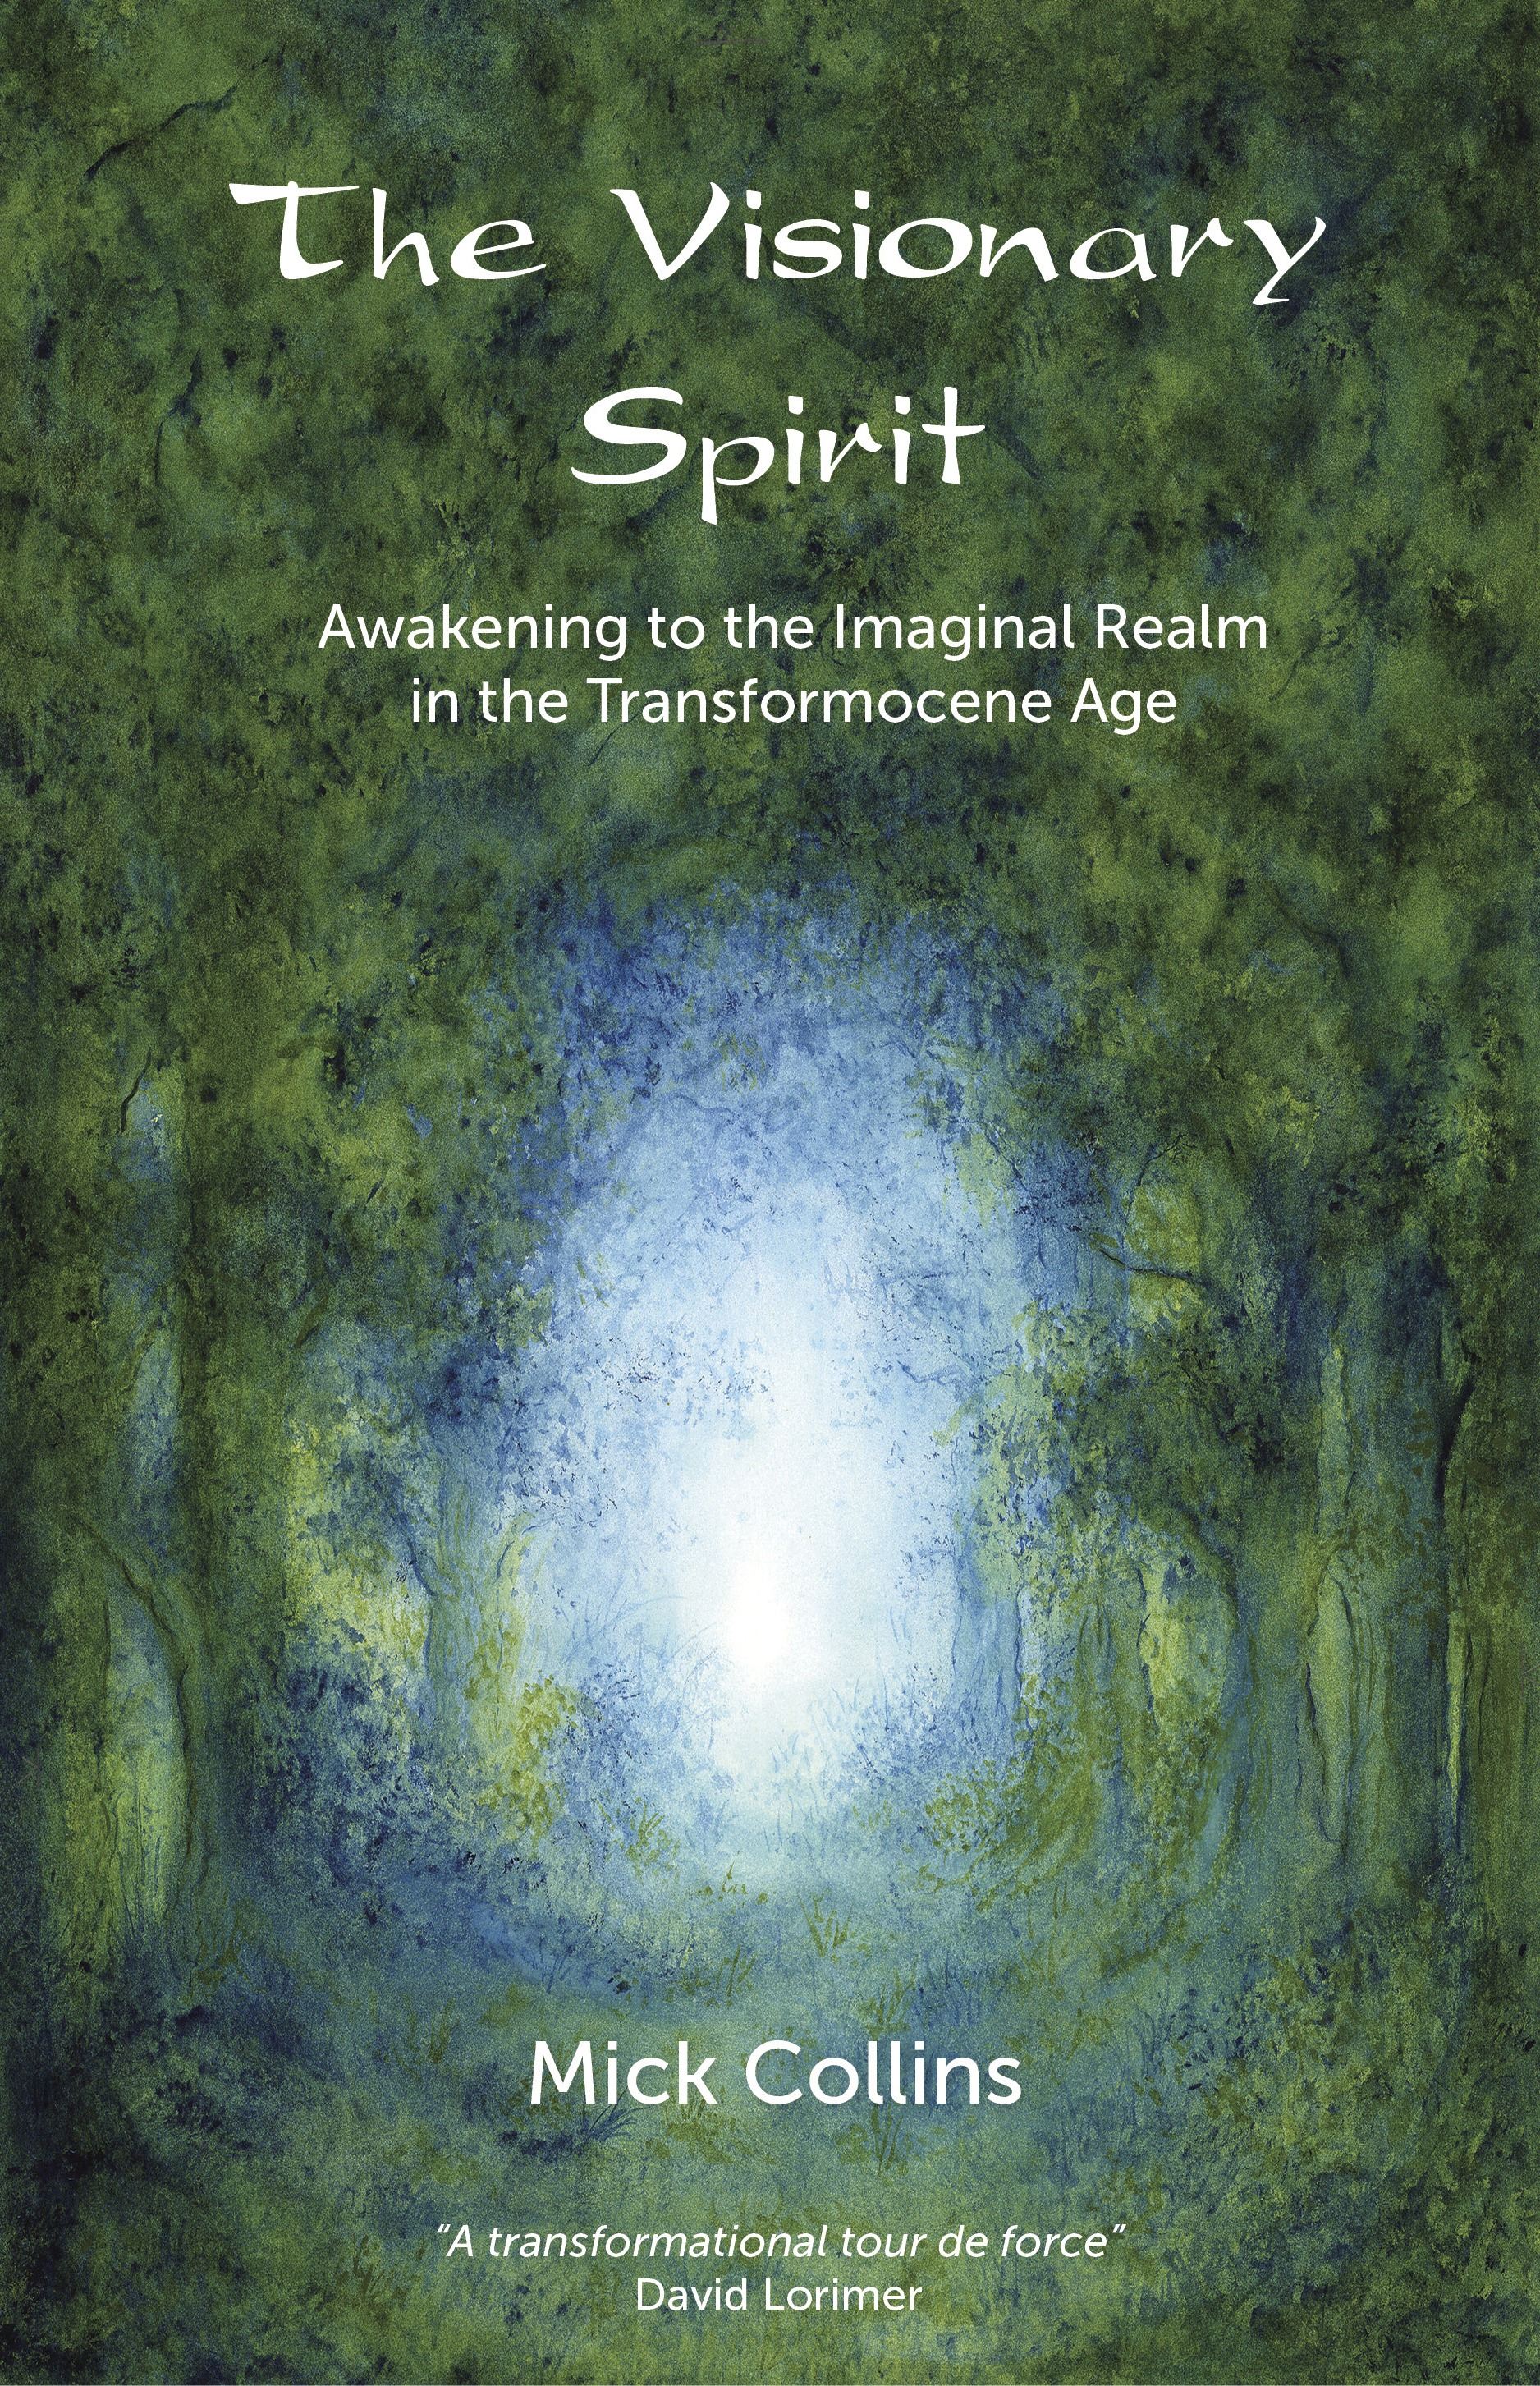 Visionary Spirit: Awakening to the Imaginal Realm in the Transformocene Age by Mick Collins